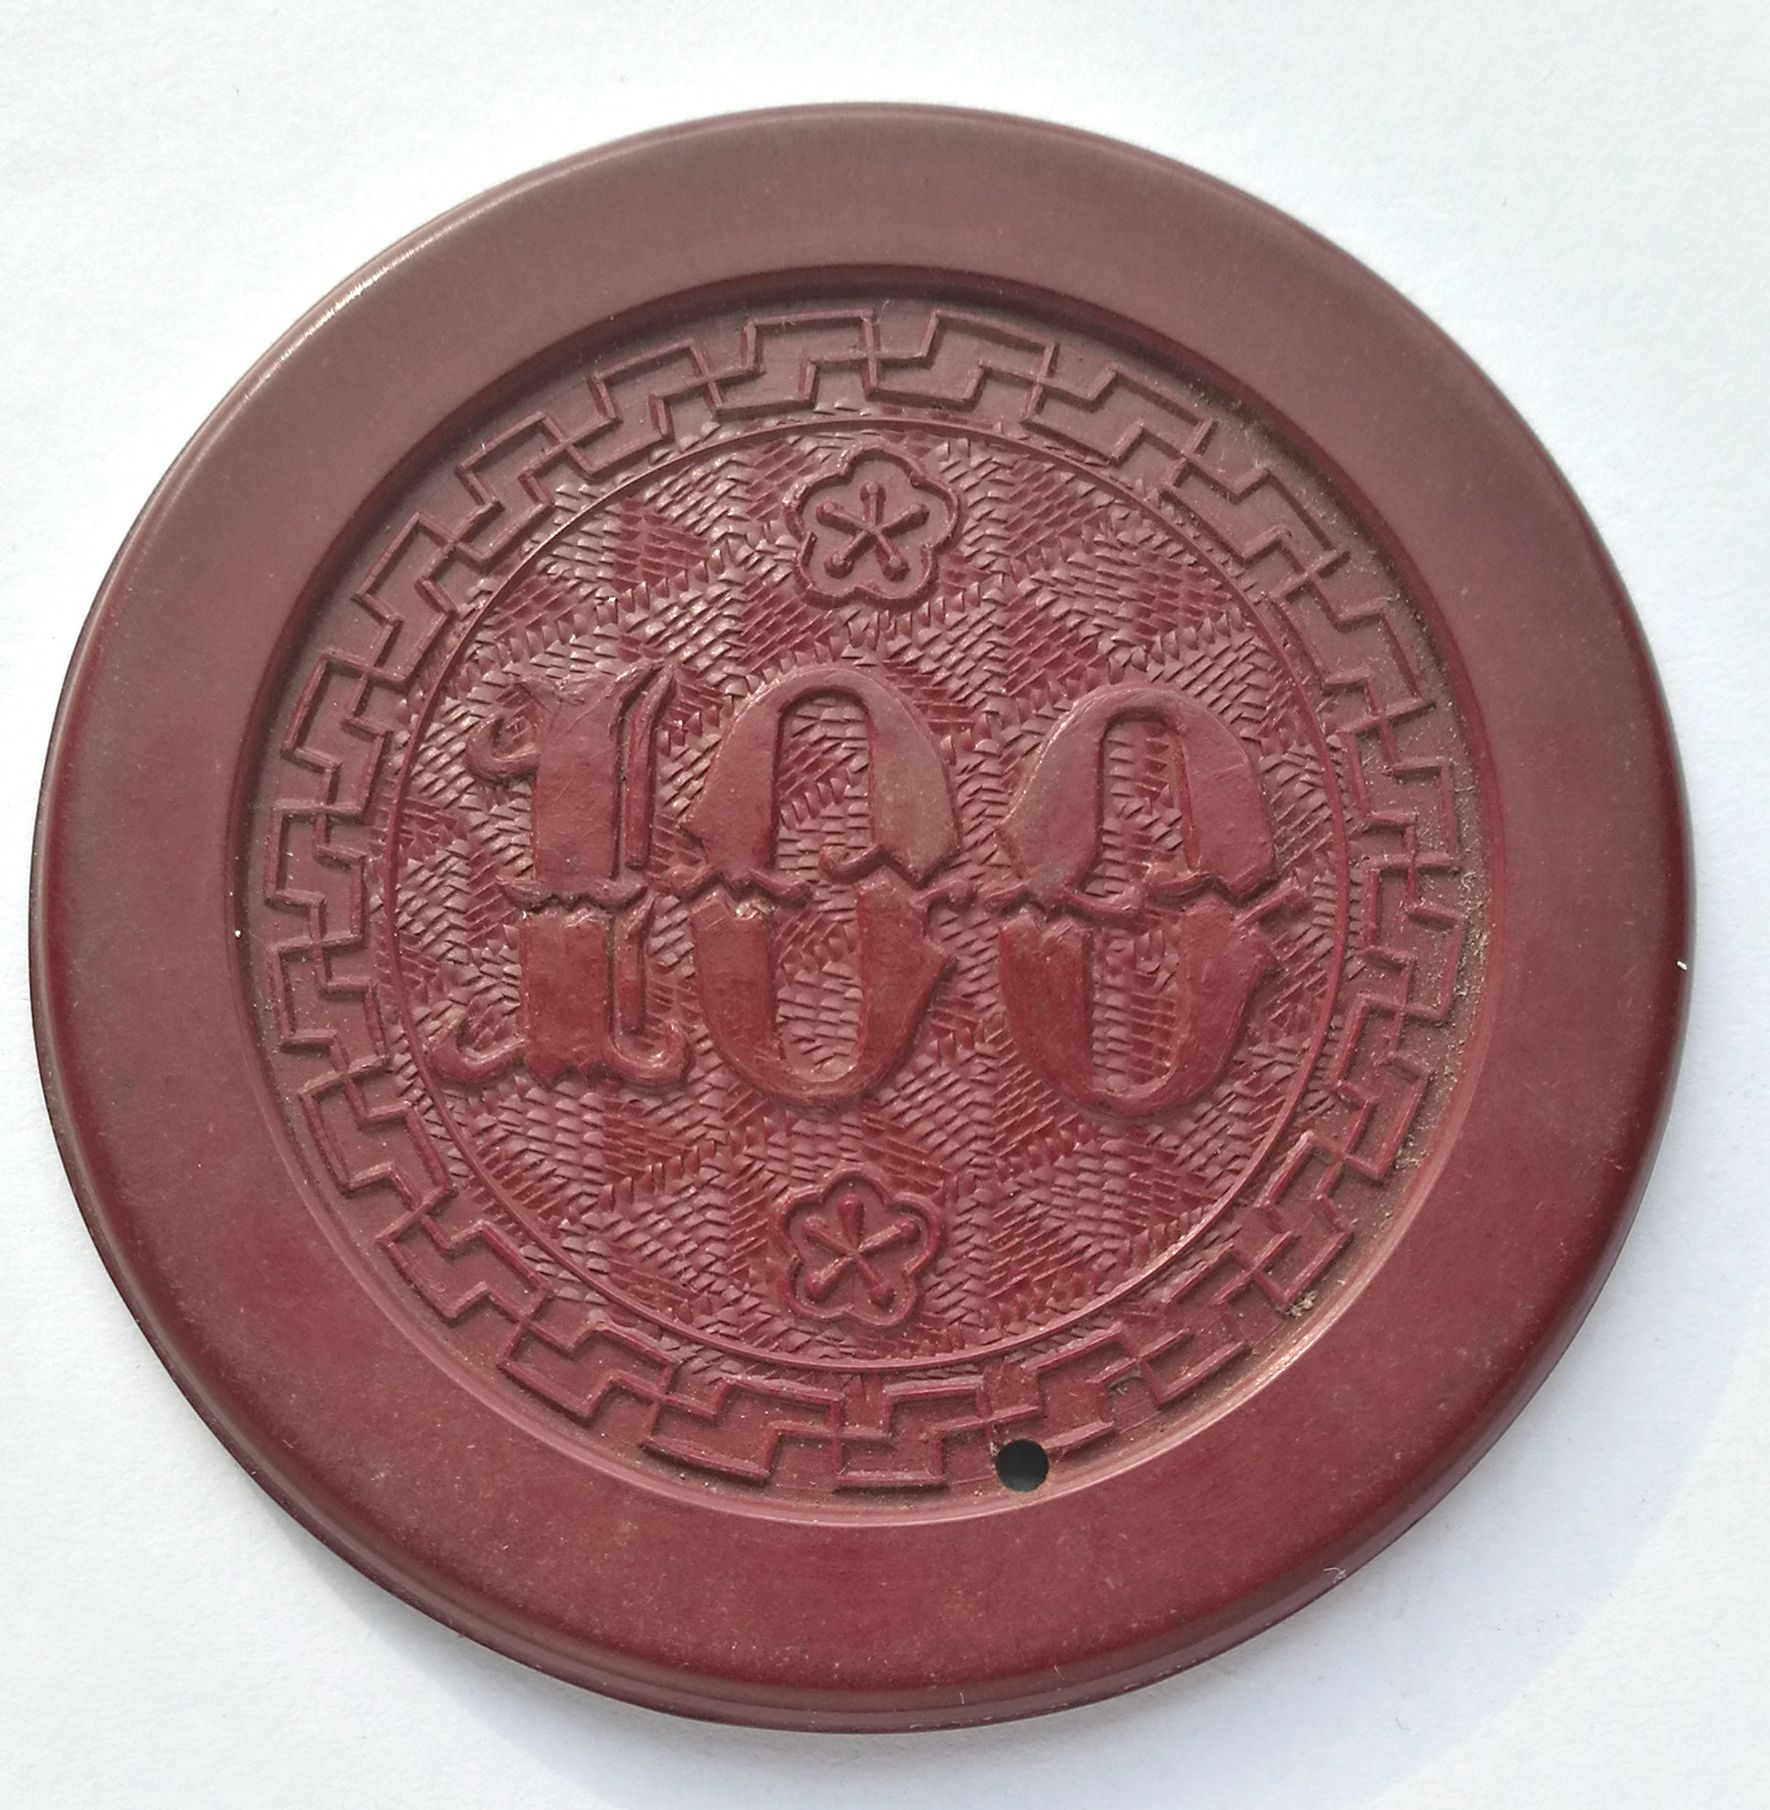 BT625, Shanghai Casino Token 100 Dollars, Red, (Bakelite) 1920's